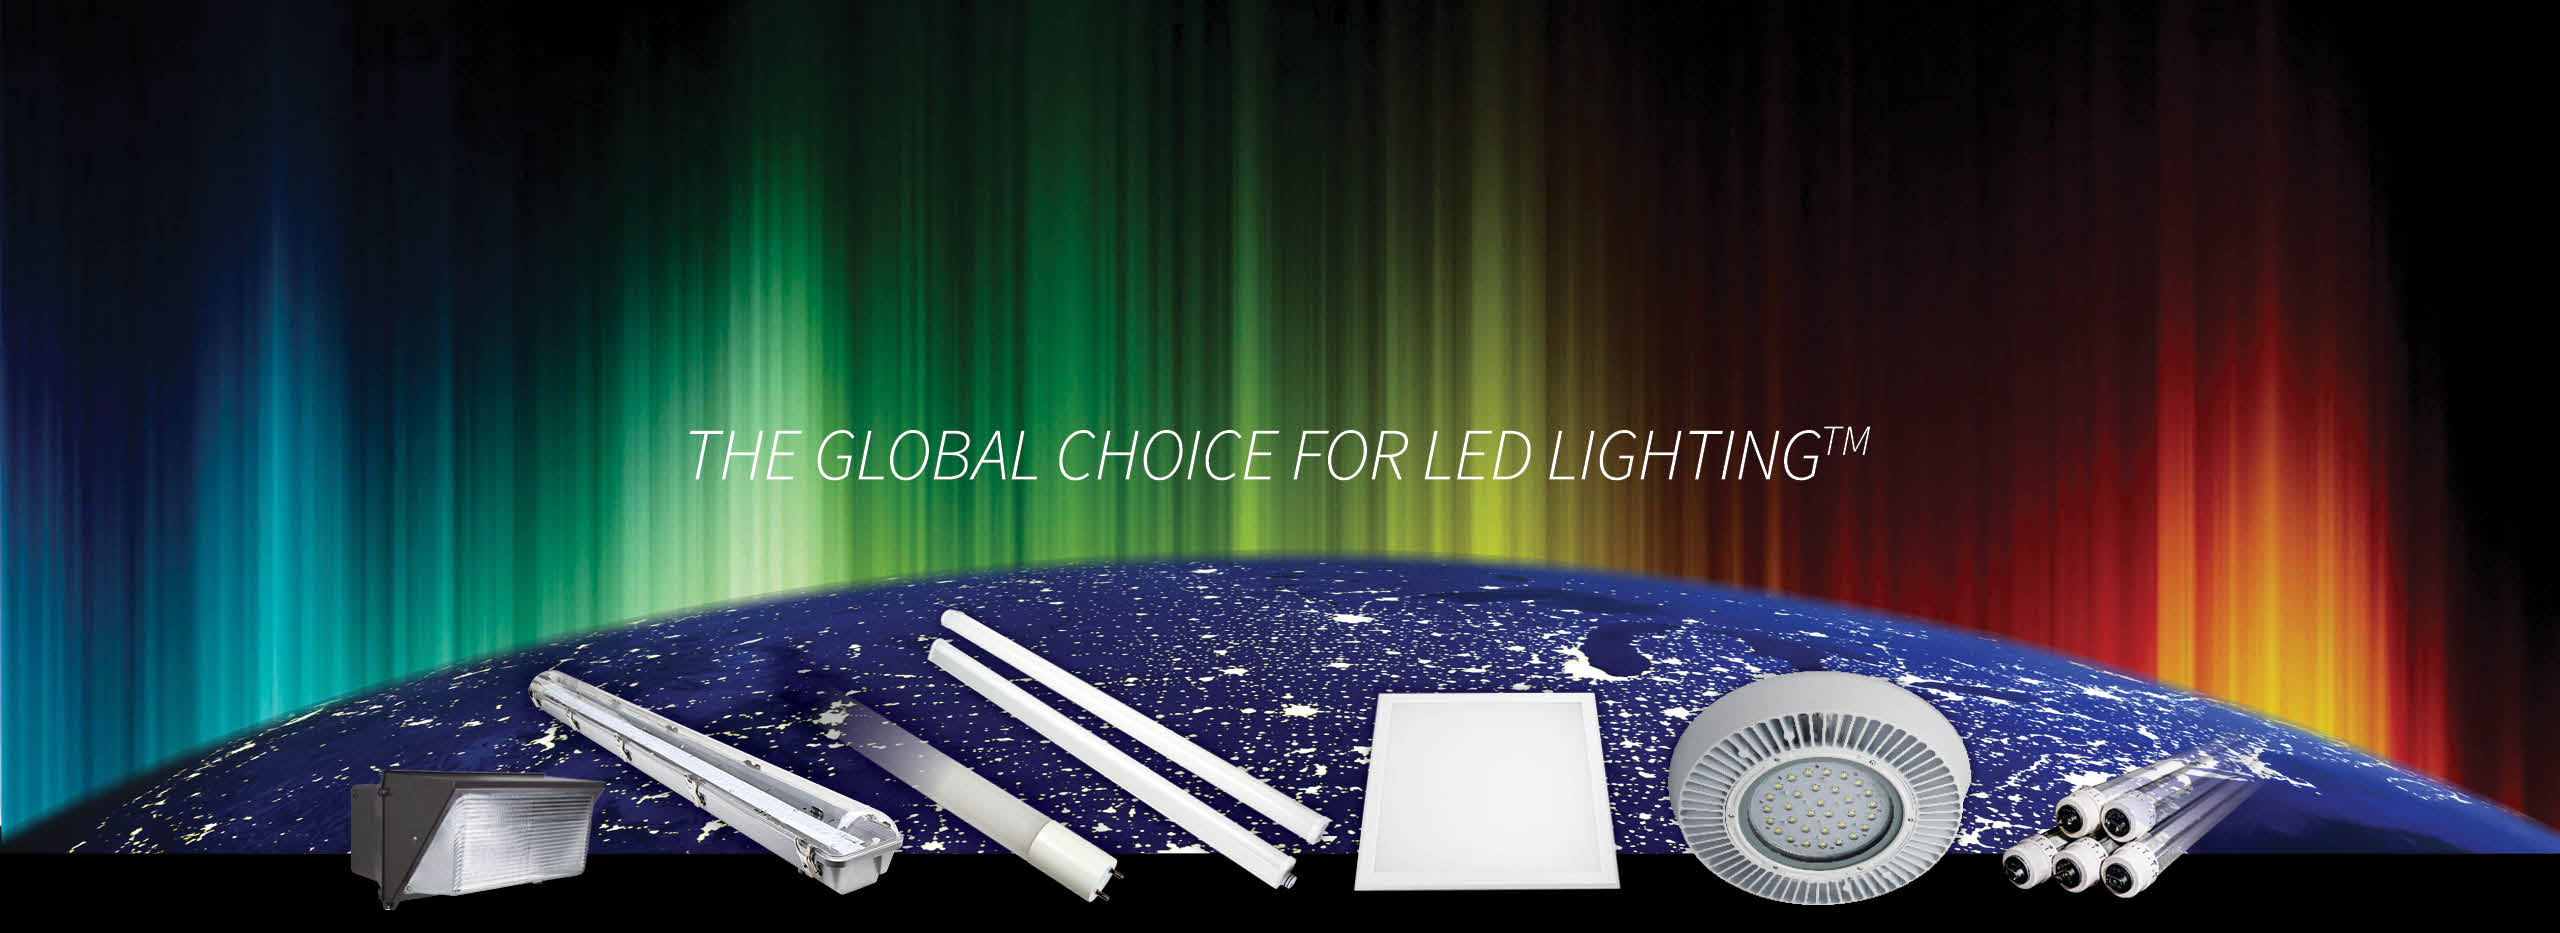 lighting solutions vm5 lighting solutions commercial led lighting